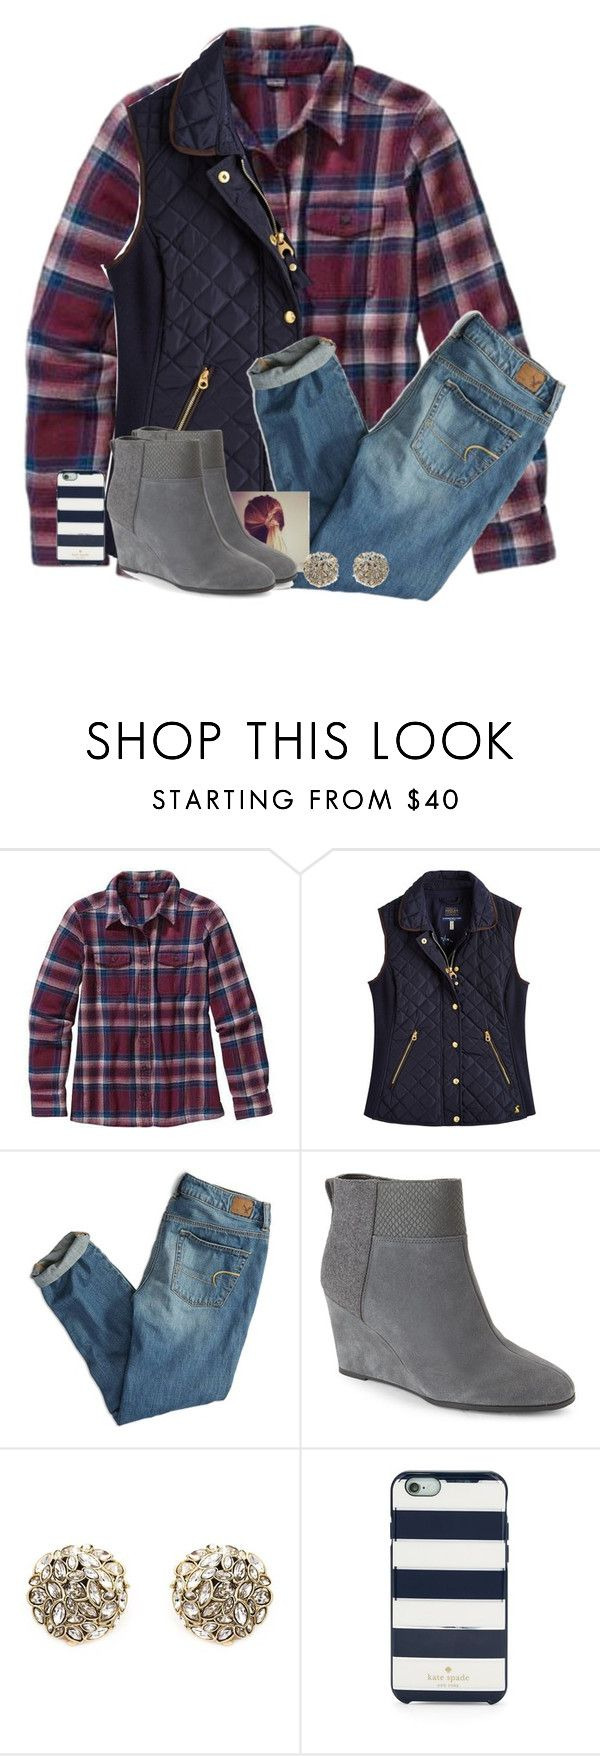 """I can't believe that one day in my life I trusted u "" by fashionpassion2002 ❤ liked on Polyvore featuring Patagonia, Joules, American Eagle Outfitters, Elie Tahari, Alexis Bittar and Kate Spade"